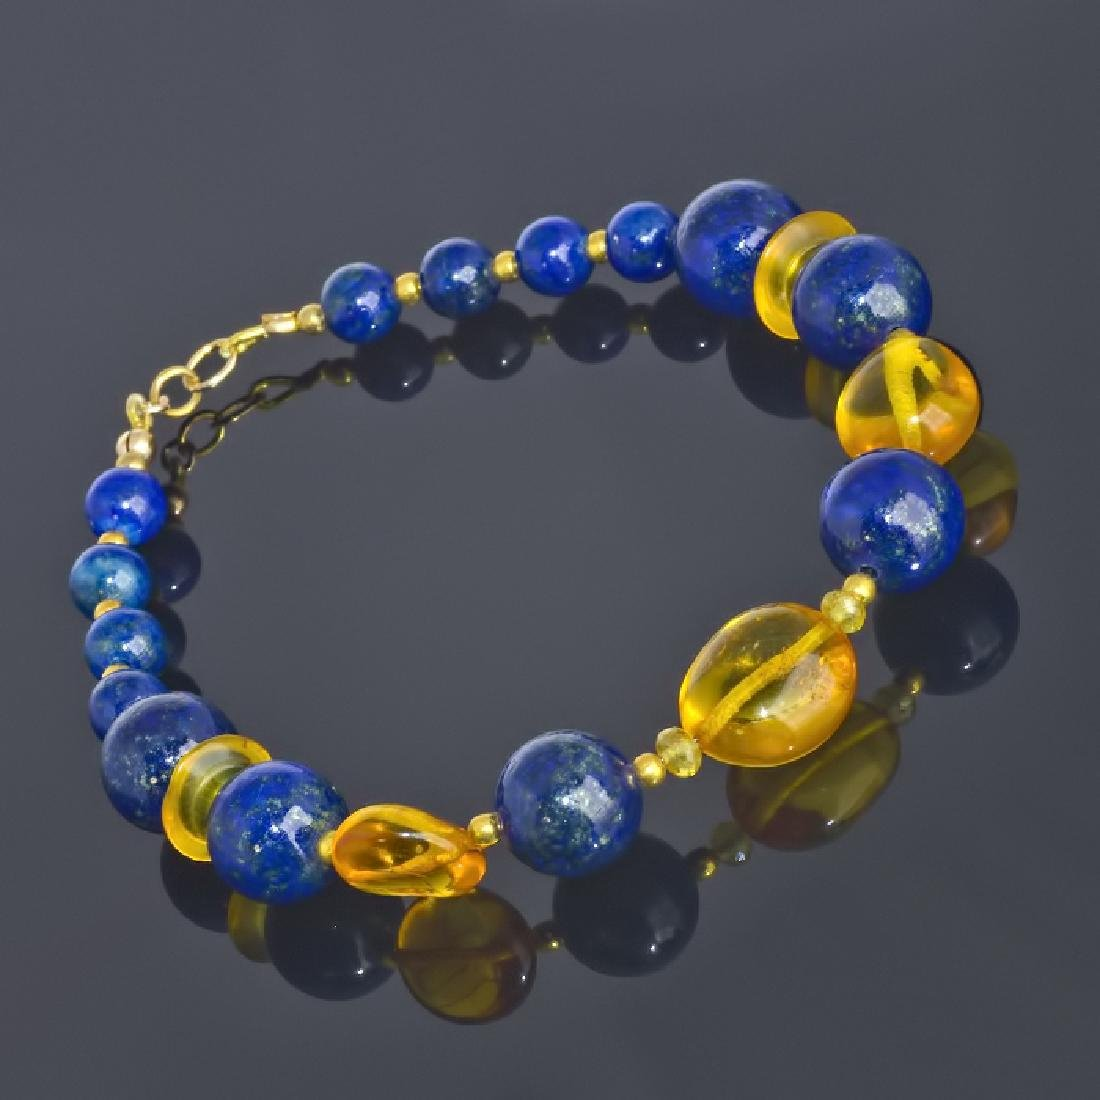 Lapis lazuli and Amber bracelet with Sapphires - 3